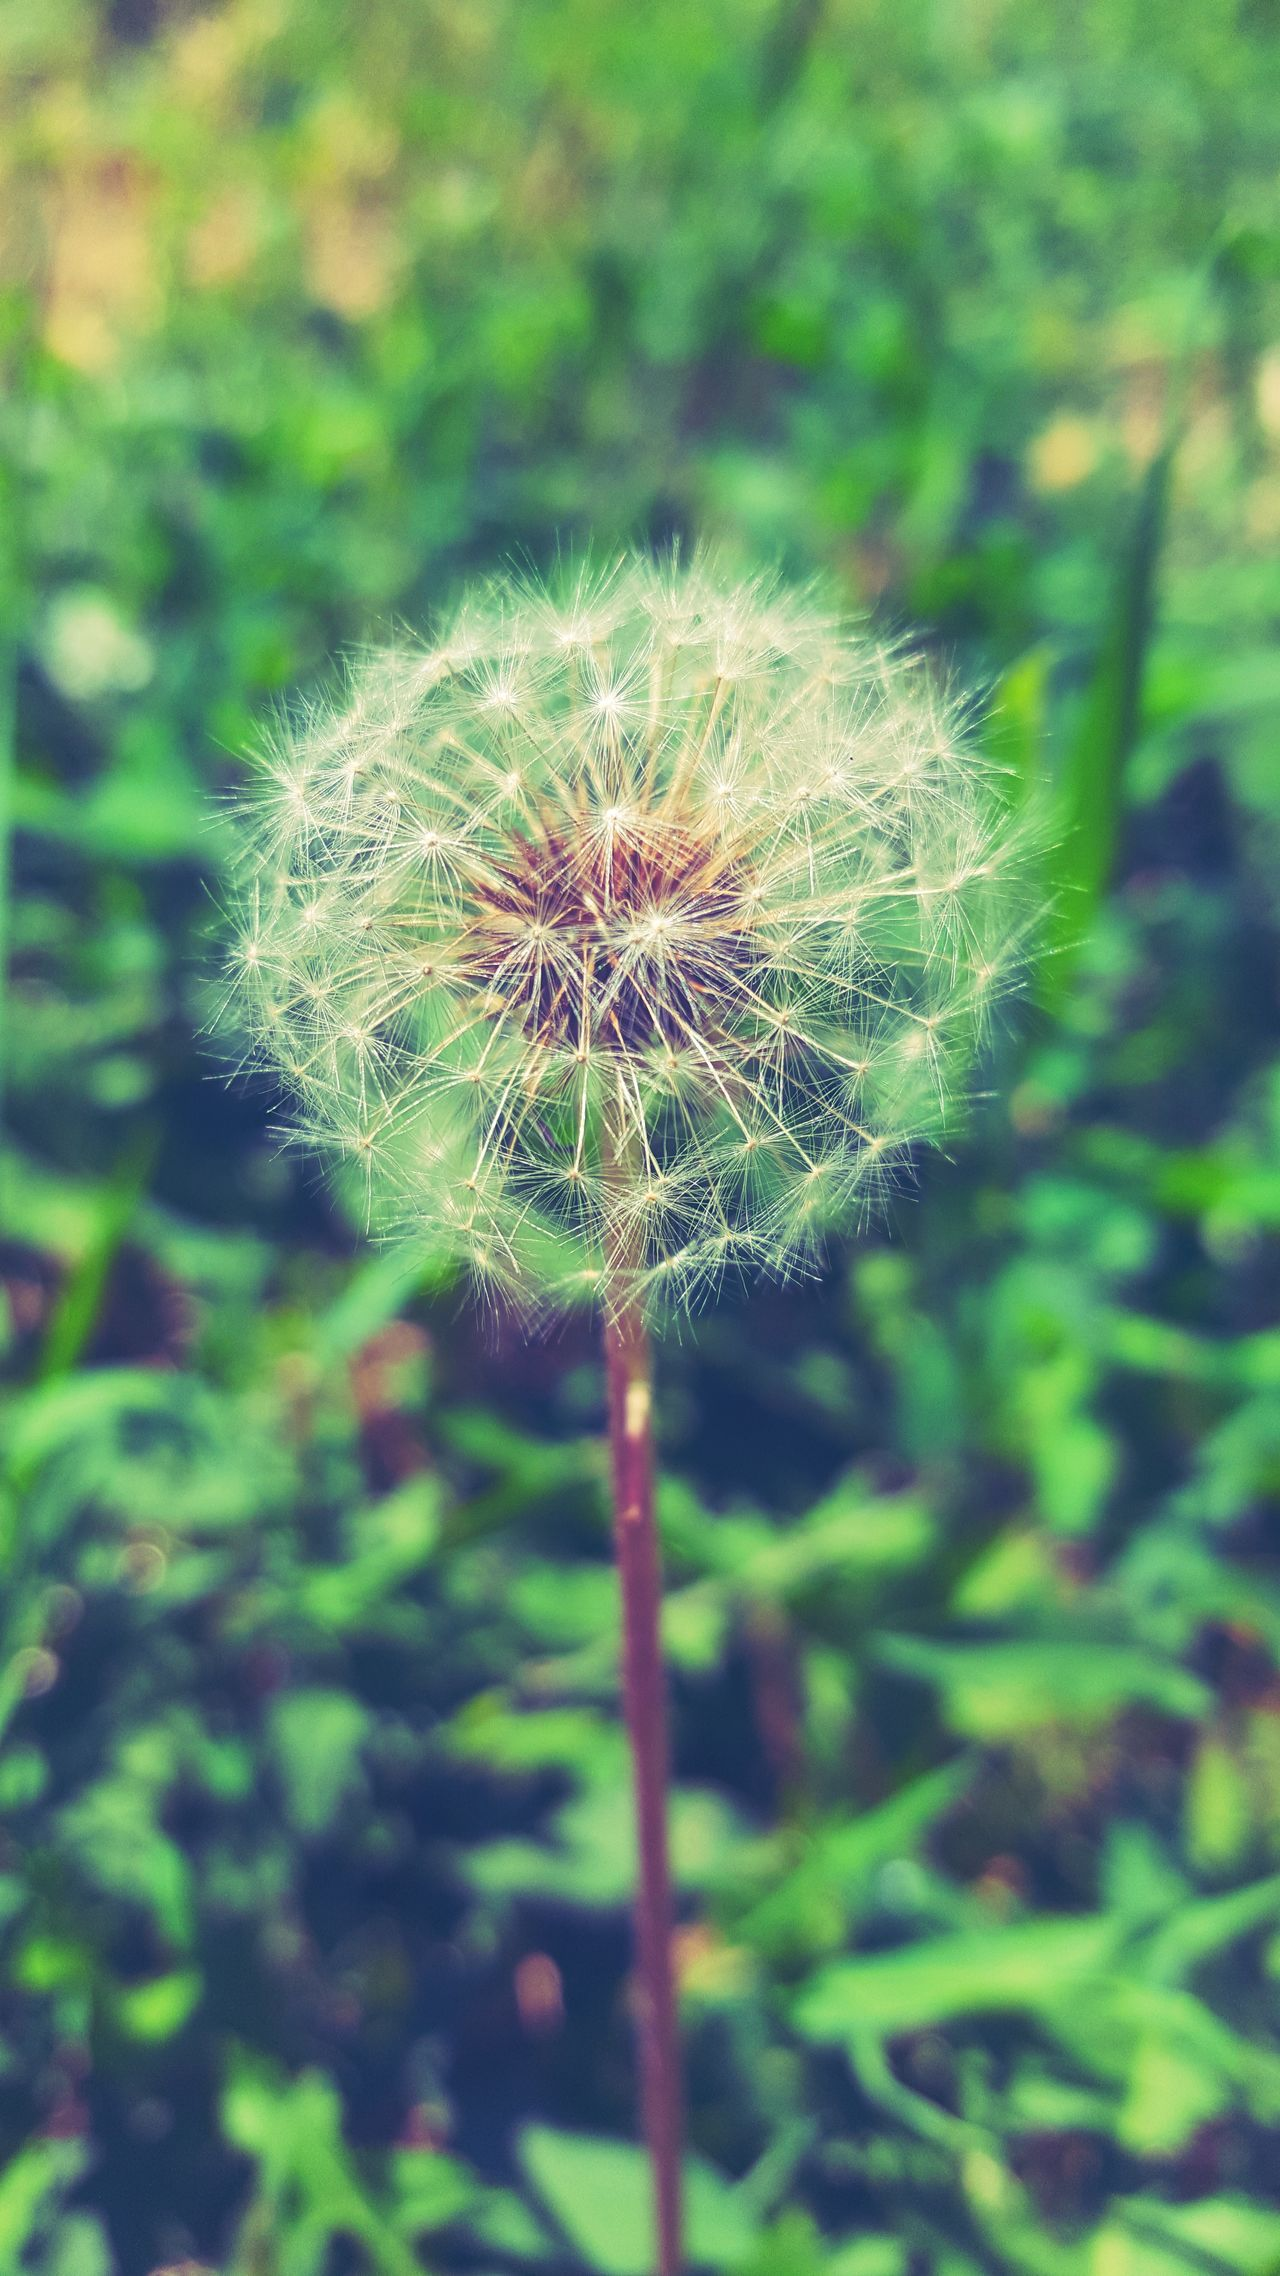 Beauty In Nature Close-up Dandelion Day Flower Flower Head Flower Petal Growth Nature No People One Flower Outdoors Petal Plant Springtime Vertical